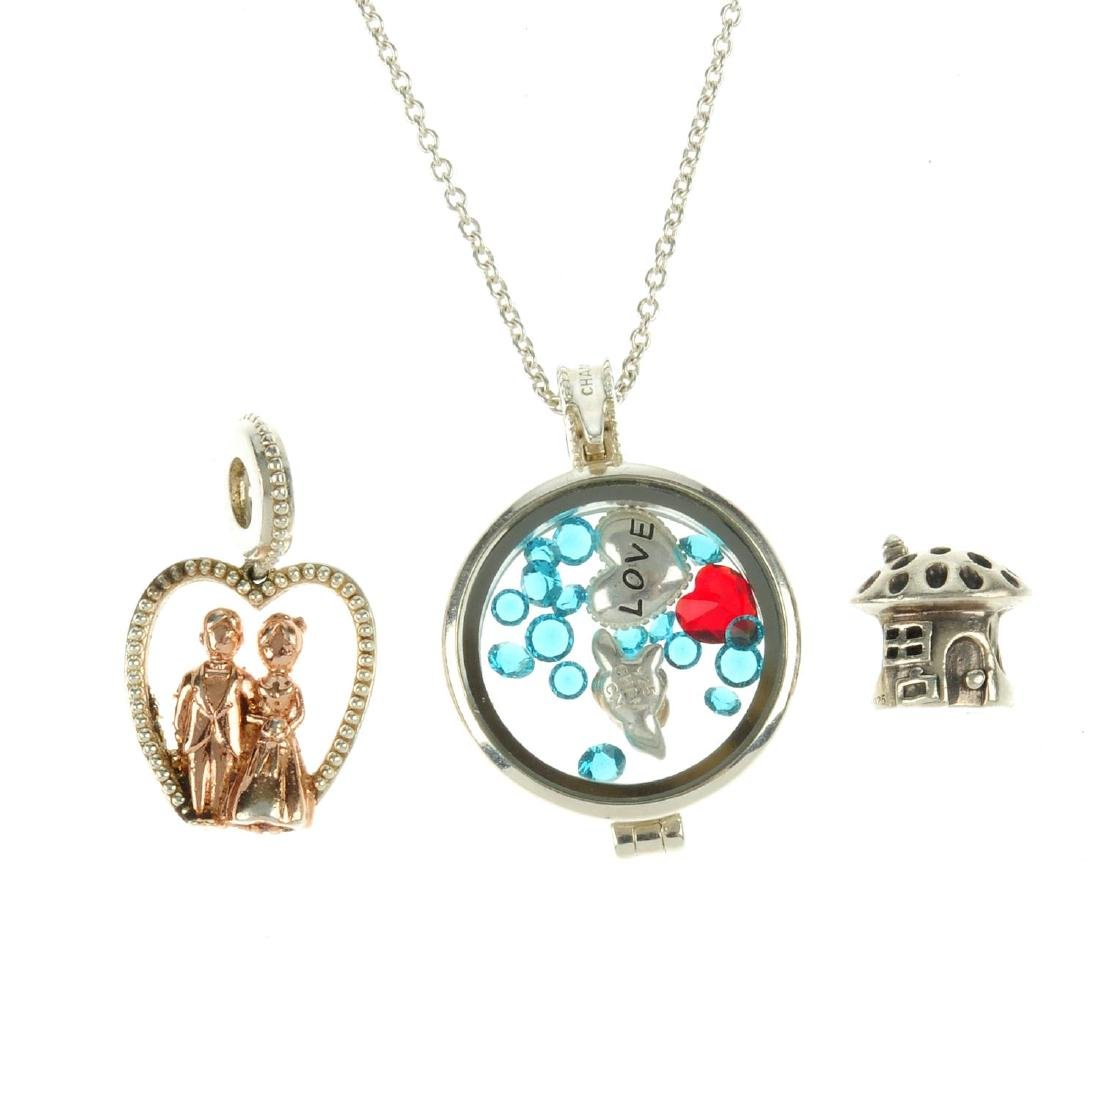 A selection of designer jewellery and charms. To